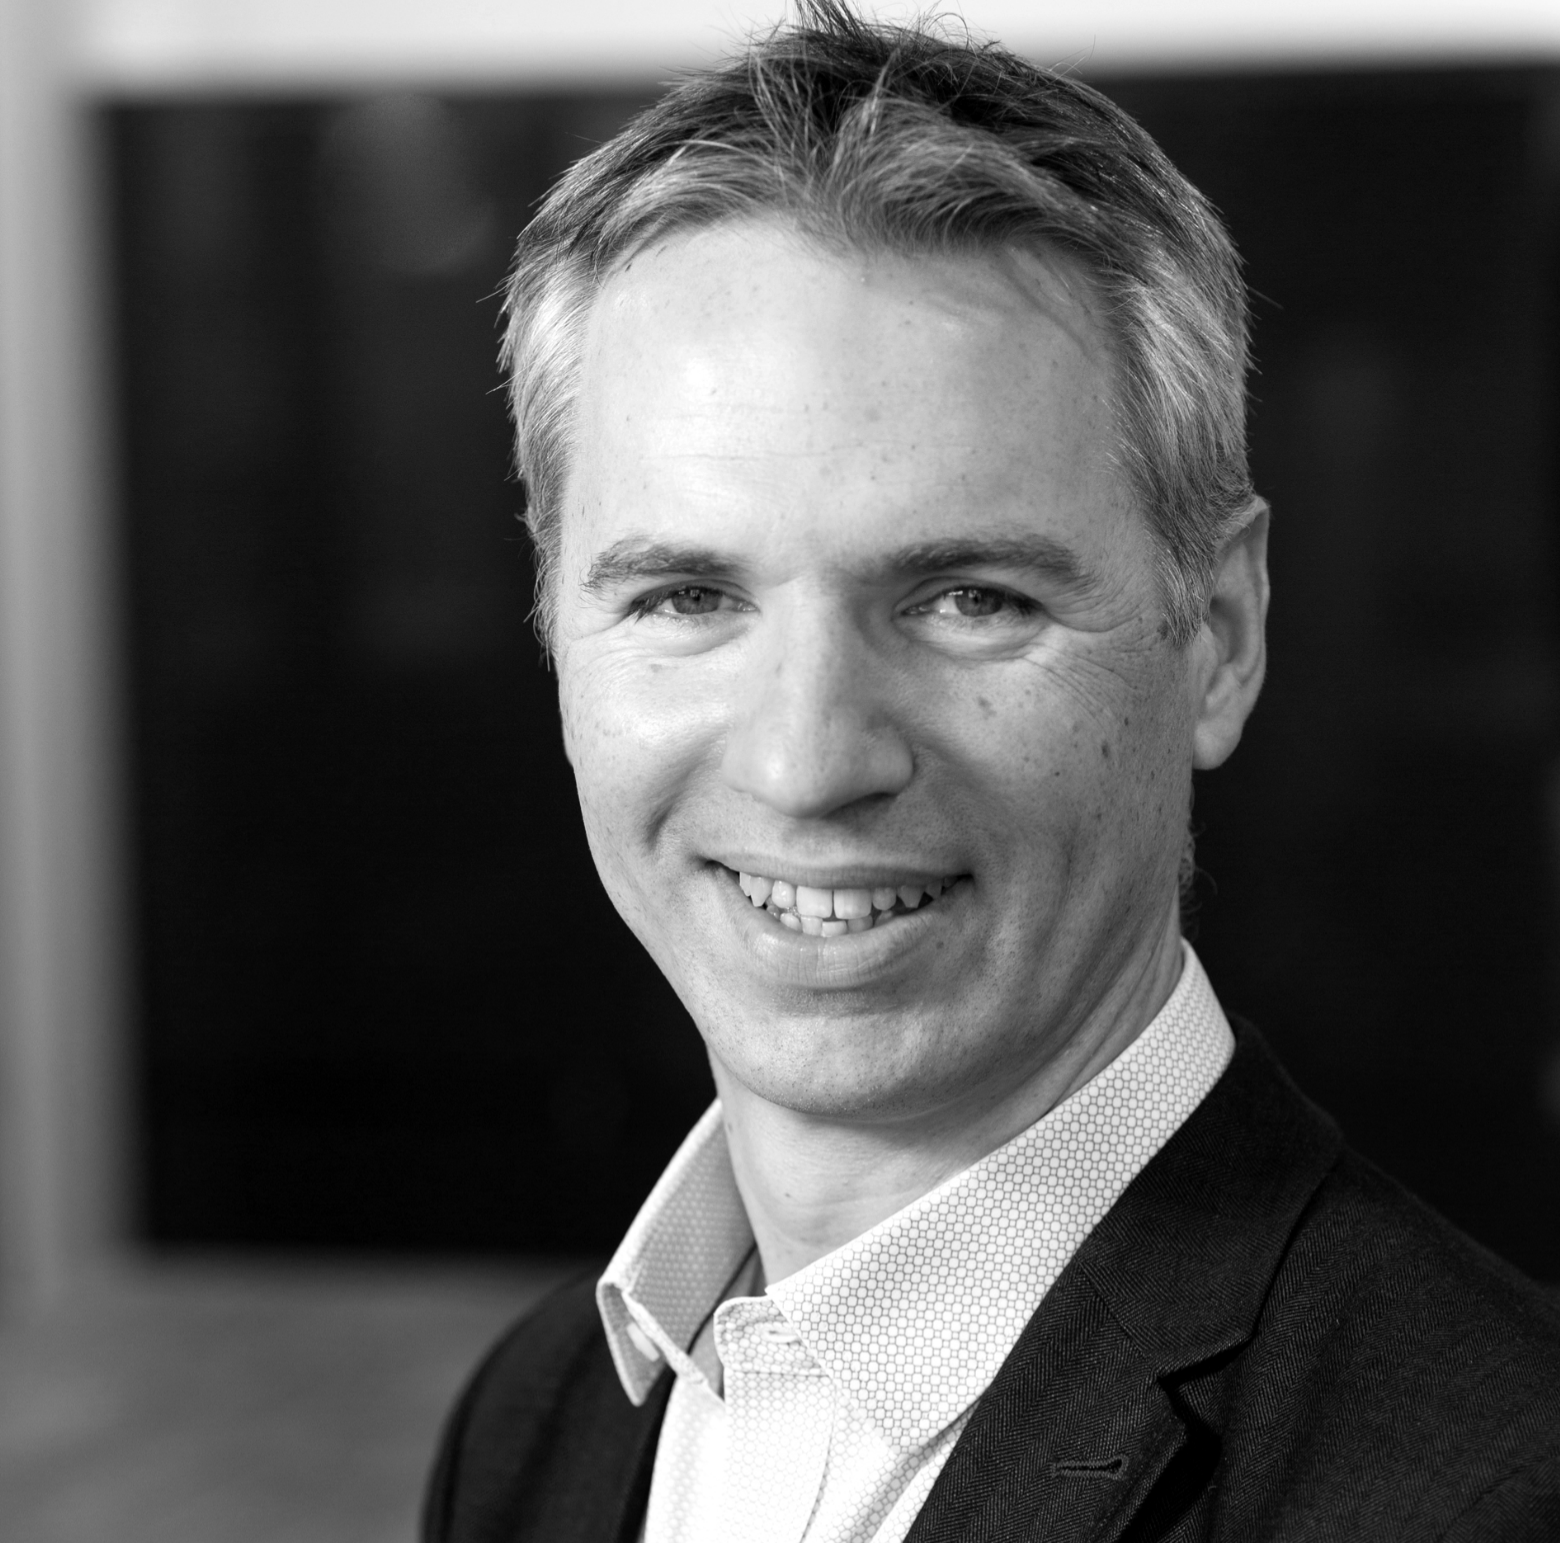 James Shannon, CTO and CPO, essensys